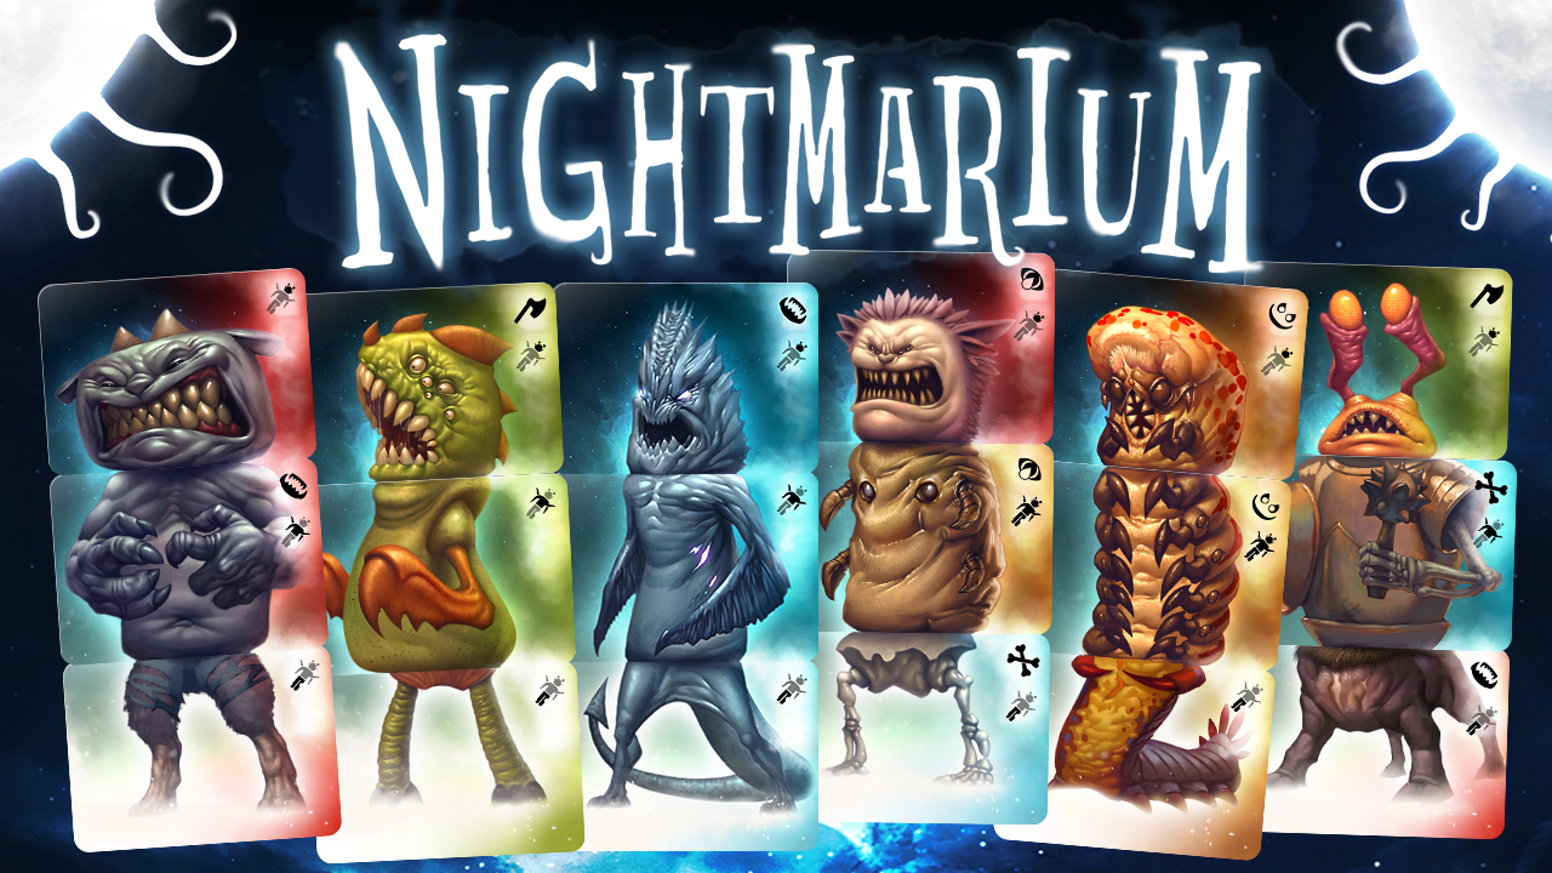 Nightmarium - a game about assembling nightmarish monsters for 2-5 players 10+. Quick, easy to learn, and full of tactical decisions